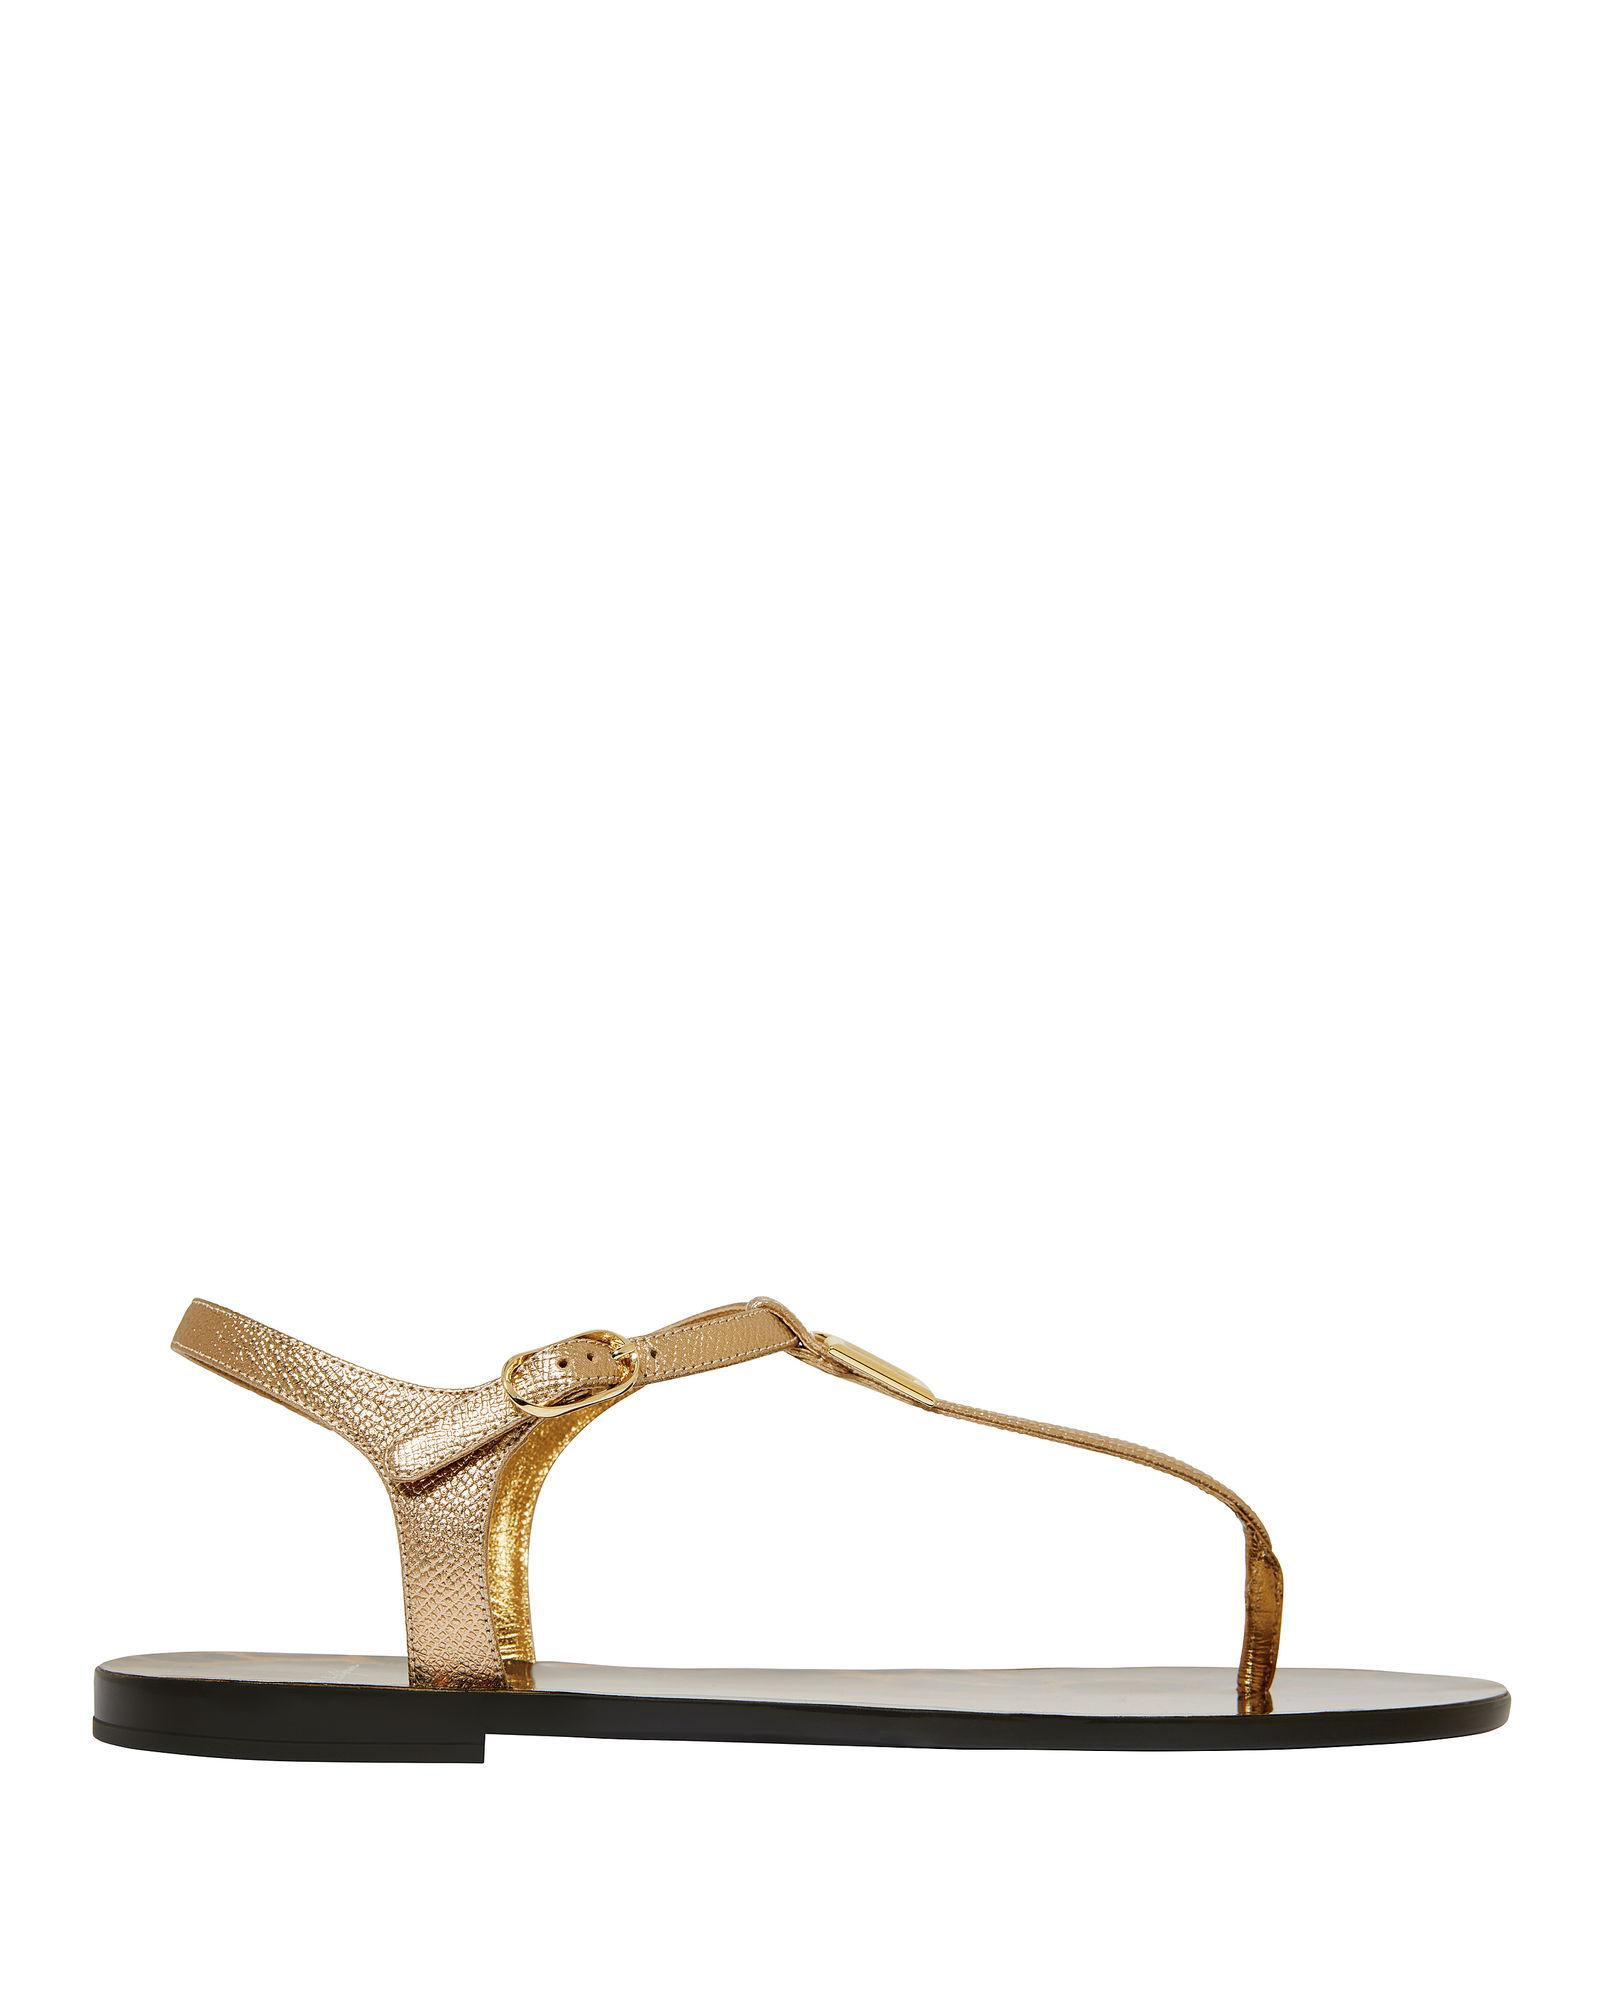 f8a31bf4899 DOLCE   GABBANA. Logo-Embellished Metallic Textured-Leather Sandals in Gold